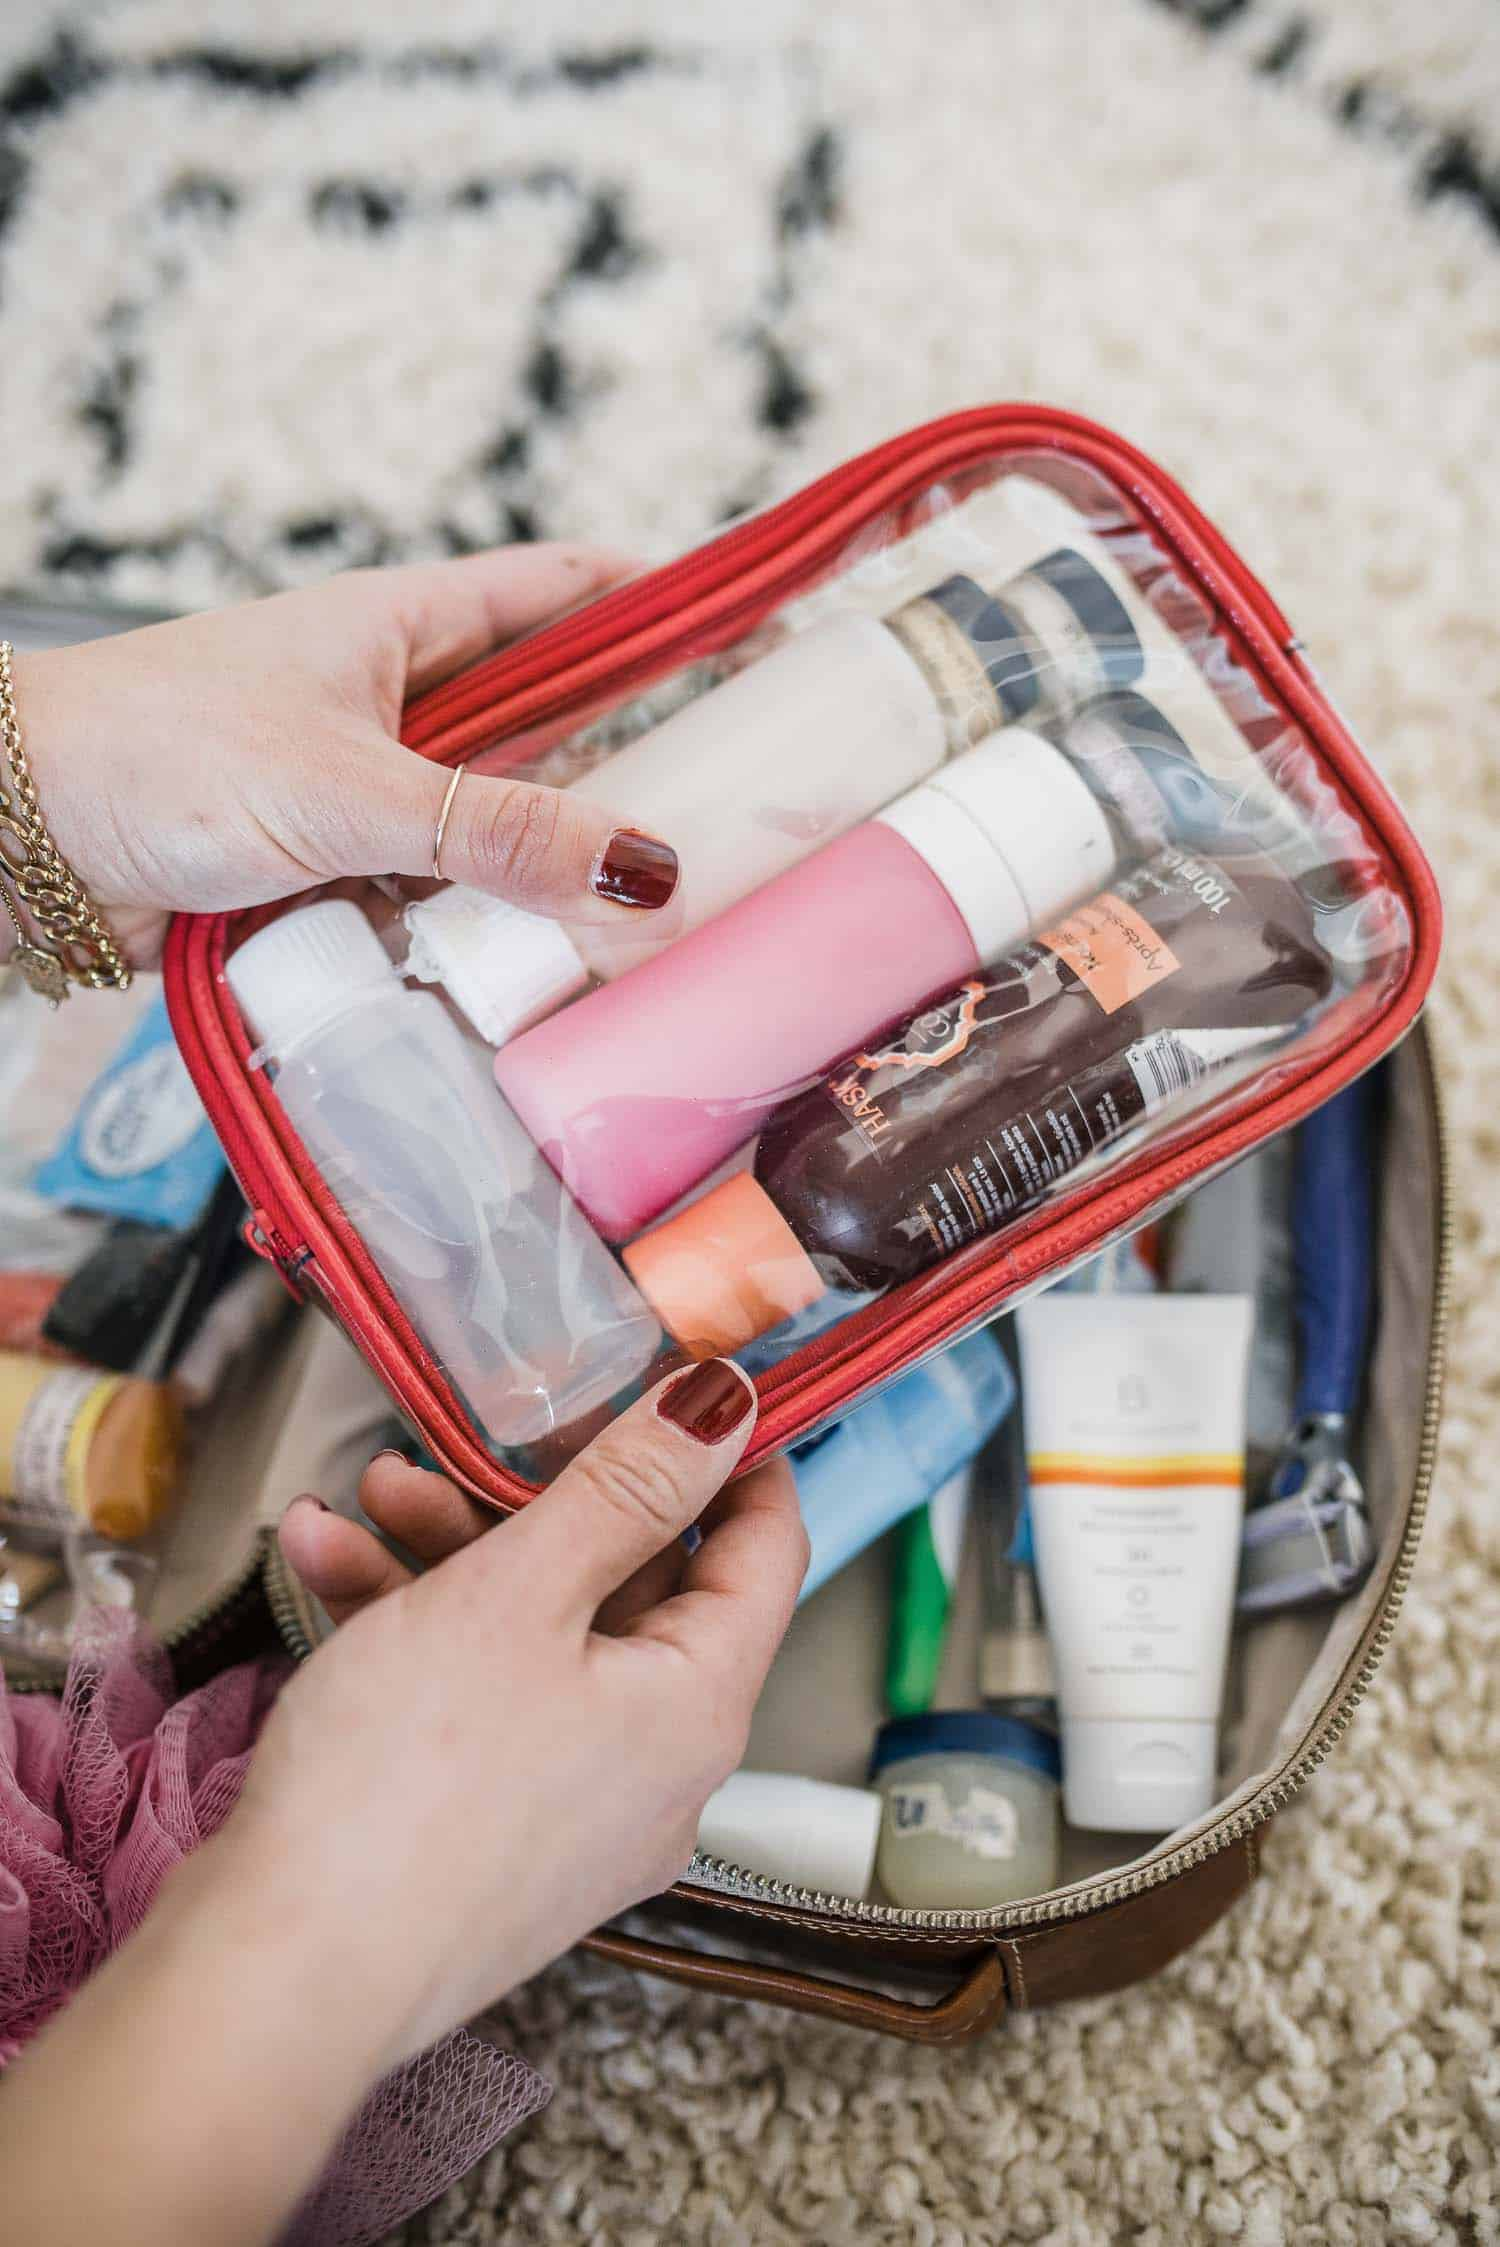 What To Keep In Your Toiletry Bag | How To Pack A Toiletry Bag